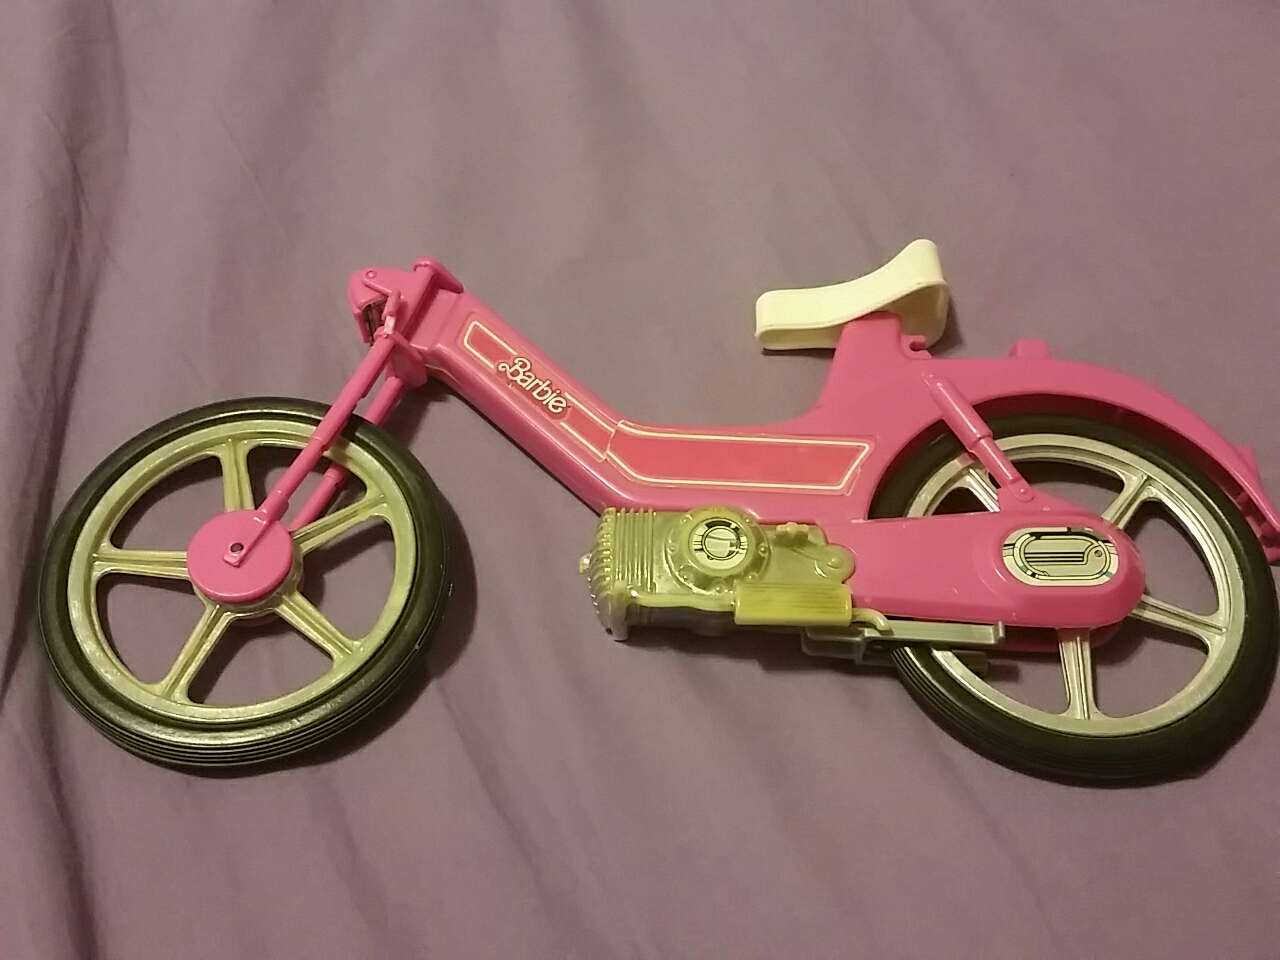 Letgo pink and green motor scooter toy in jacksonville fl Motor scooters jacksonville fl